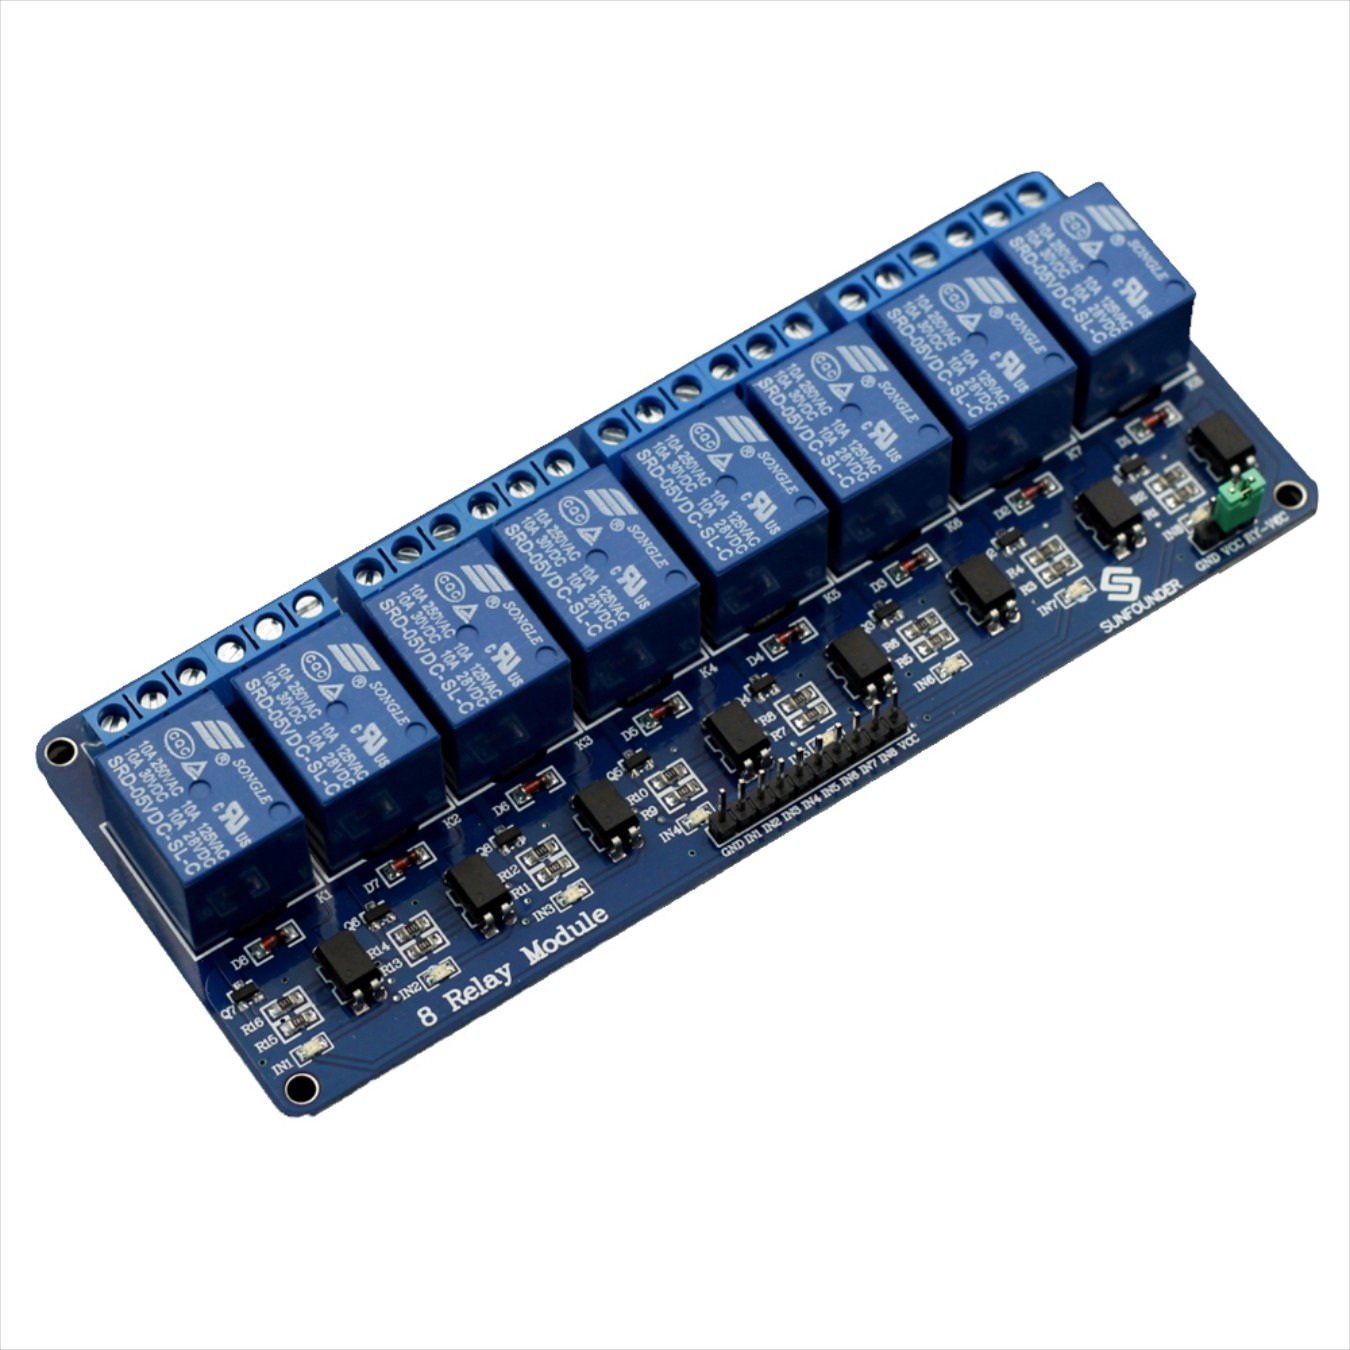 Arduino 8 Channel Relay Module Daftar Harga Terlengkap Indonesia Hobbyistconz 5v With Optocoupler For Pic Arm Dsp Avr 1 Of